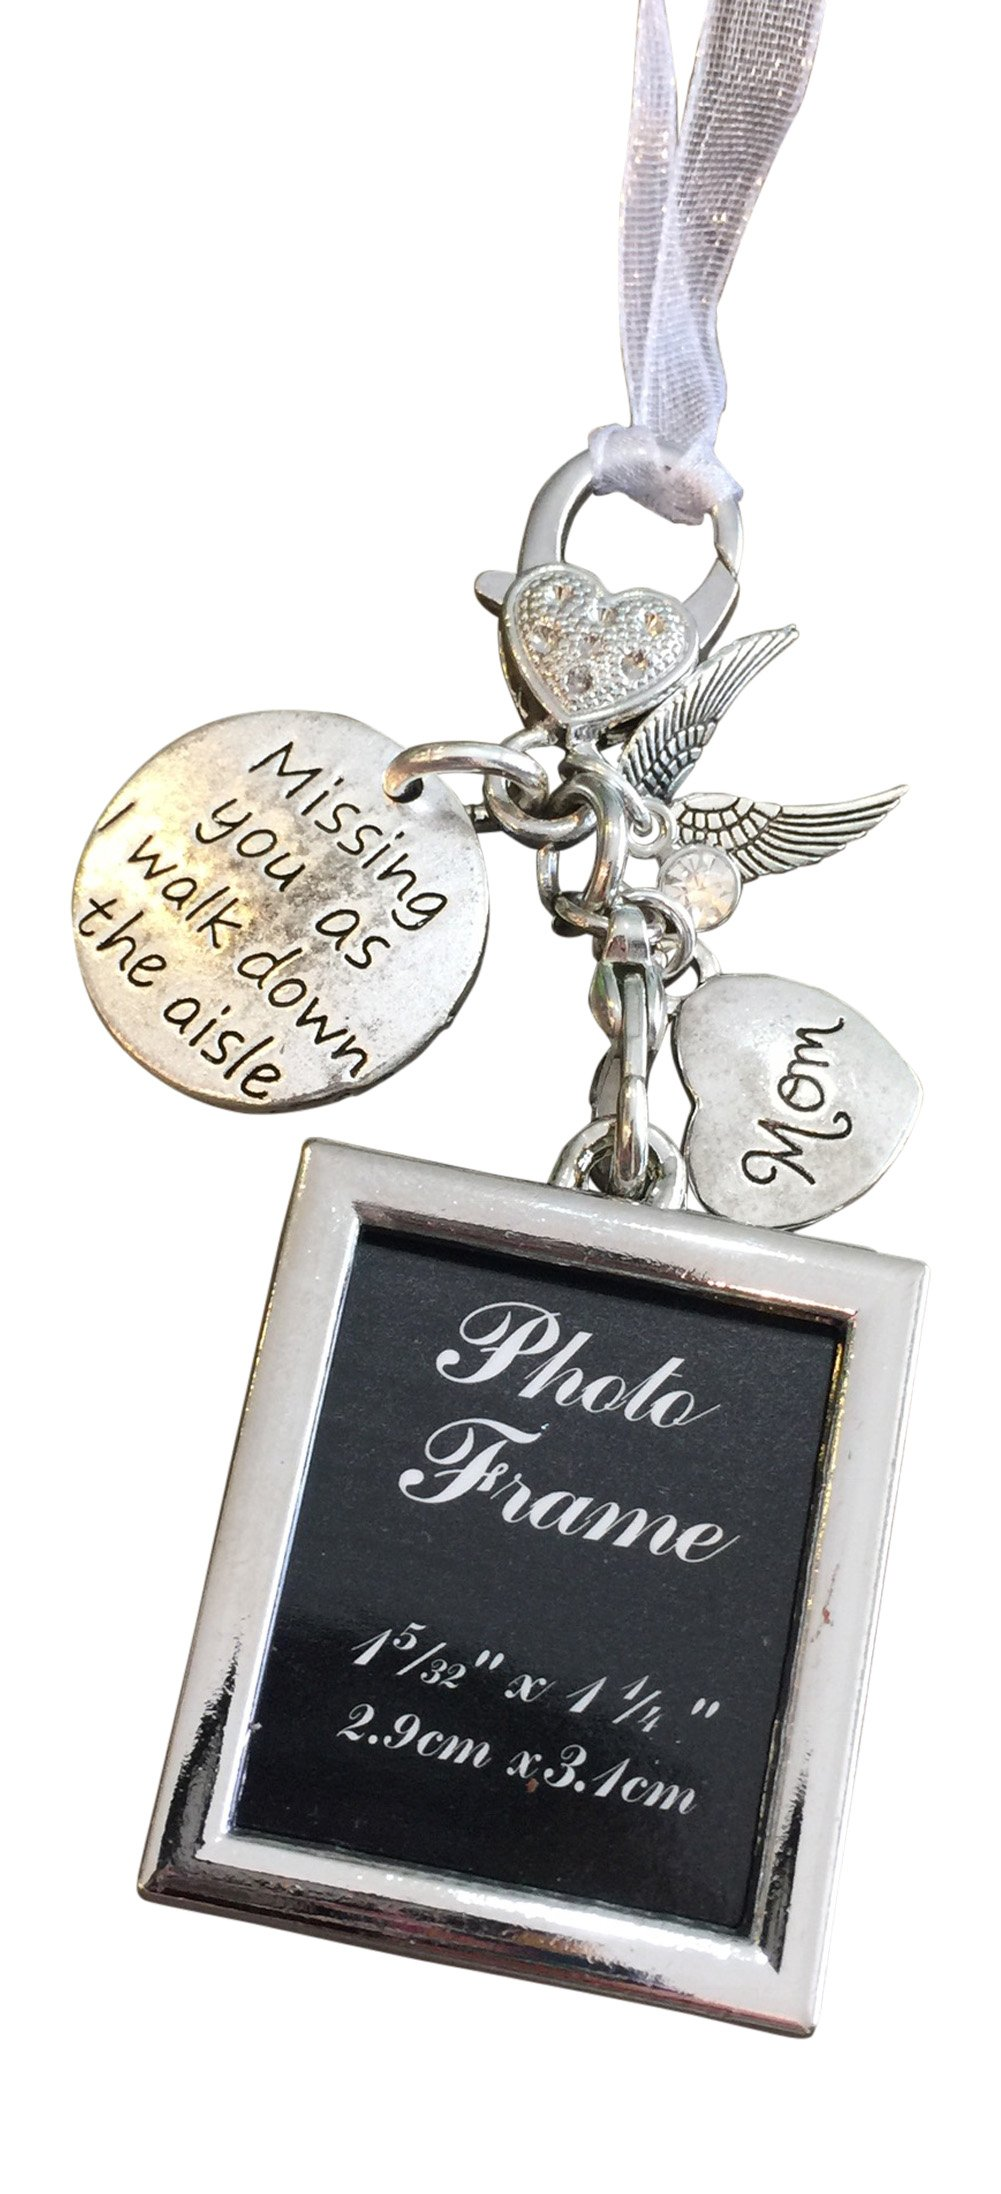 Harper Olivia Bridal Bouquet Photo Charm Missing You As I Walk Down The Aisle Wedding Memorial Gift for Mom